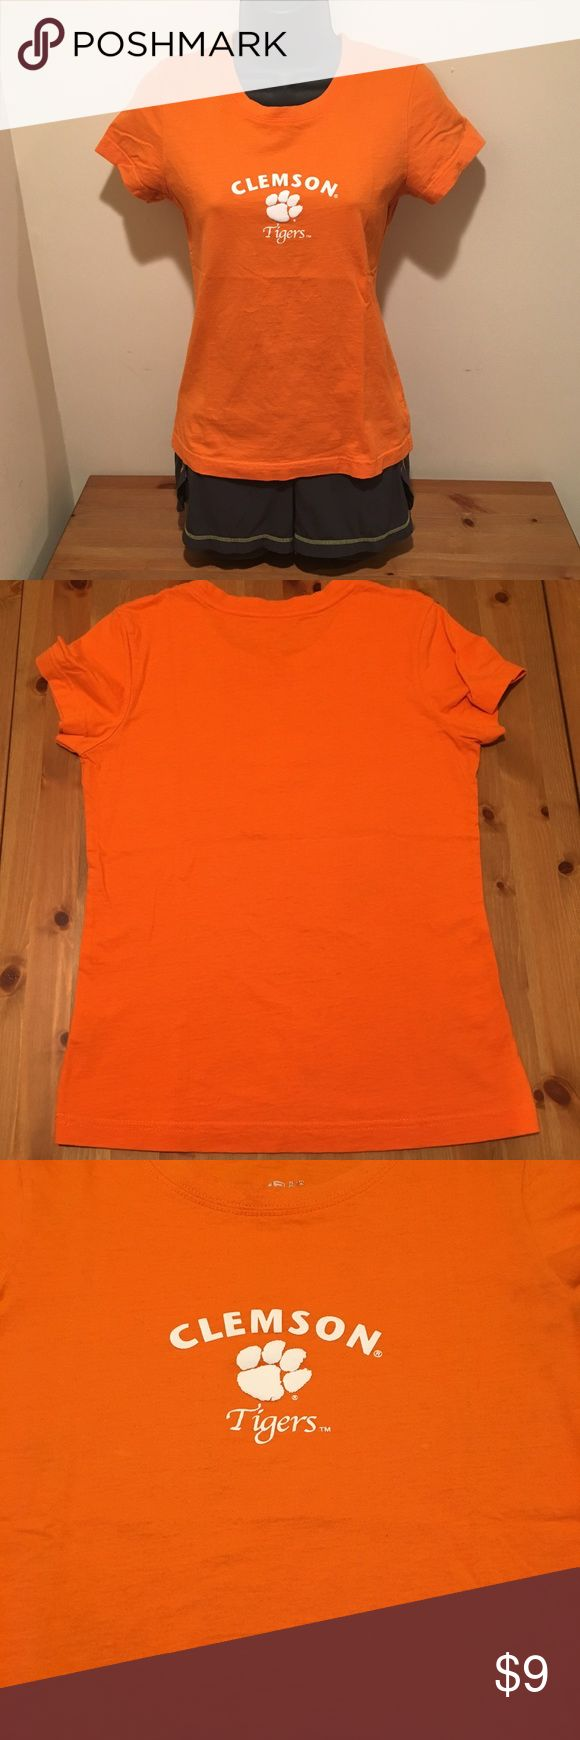 3/$15 or $9 FIRM Clemson Tigers women's t-shirt Go Tigers! Clemson fans will love this shirt. Super soft and comfortable T-shirt with the Clemson university Tigers logo on the front. Gently used. Note the small stain near the left under arm, not likely to be noticeable when wearing due to its location. Price reflects condition. Smoke free home. Clemson University Tops Tees - Short Sleeve